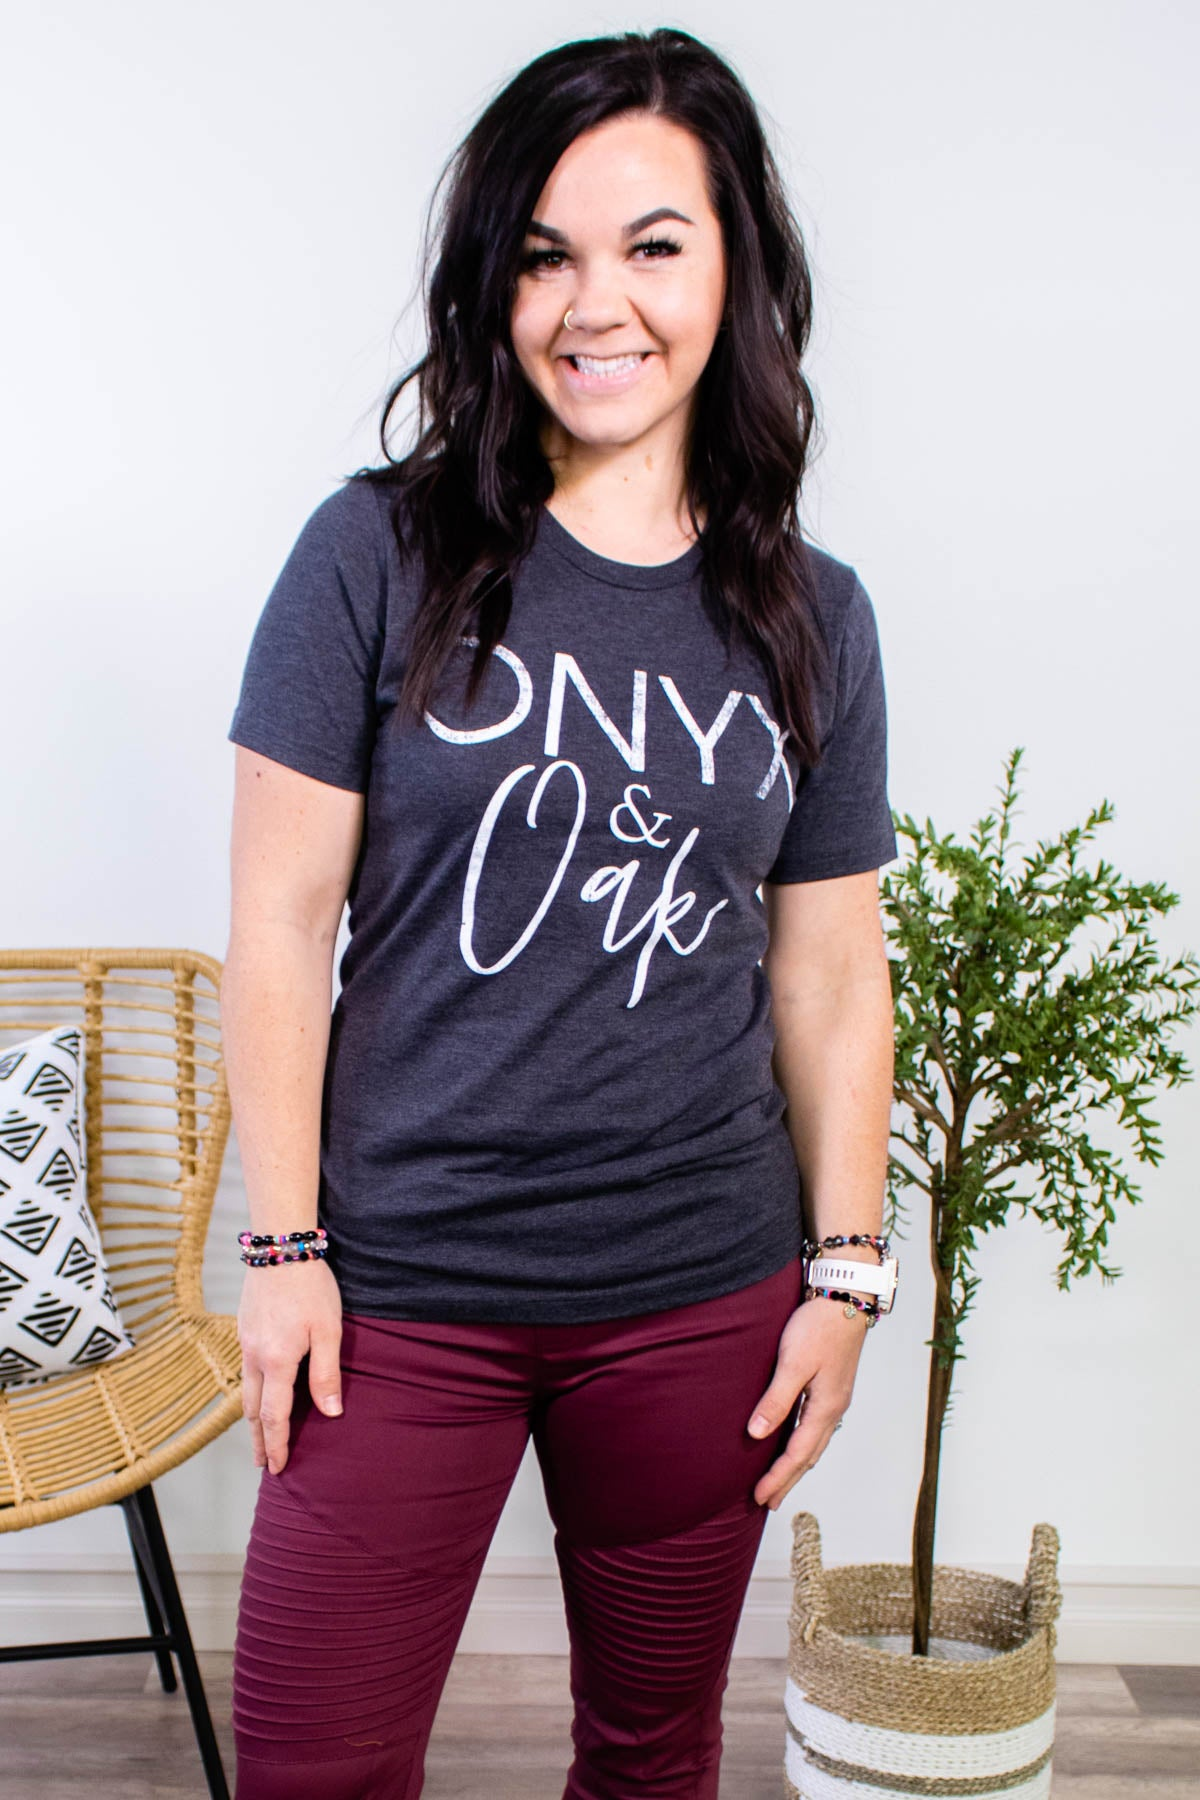 Onyx & Oak Tee - Onyx & Oak Boutique